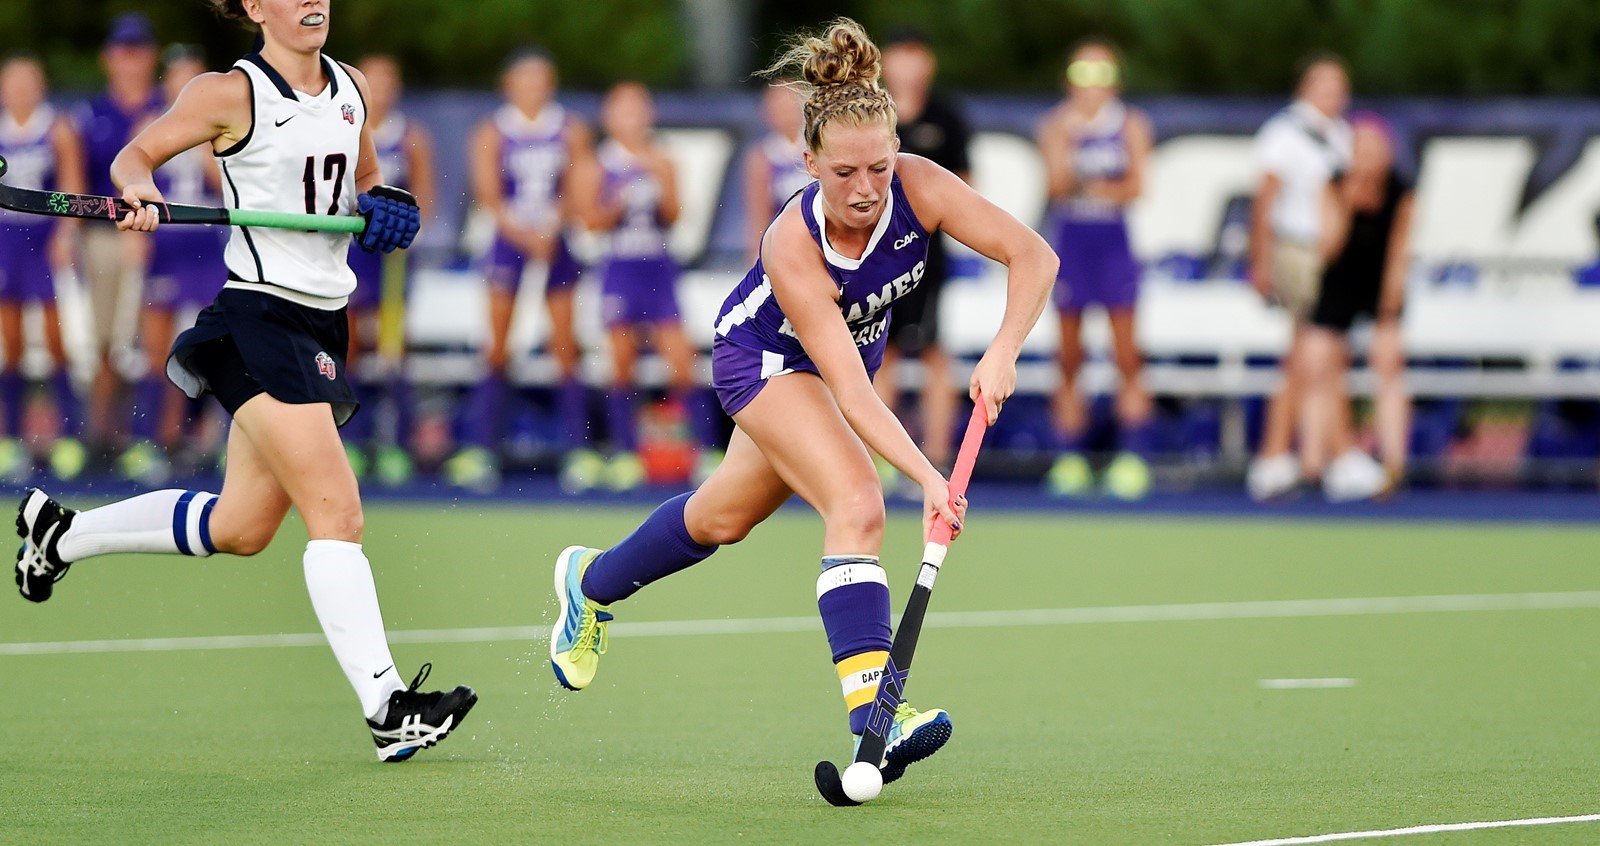 Field Hockey: #19 JMU Battles for 3-2 Victory over #13 Liberty